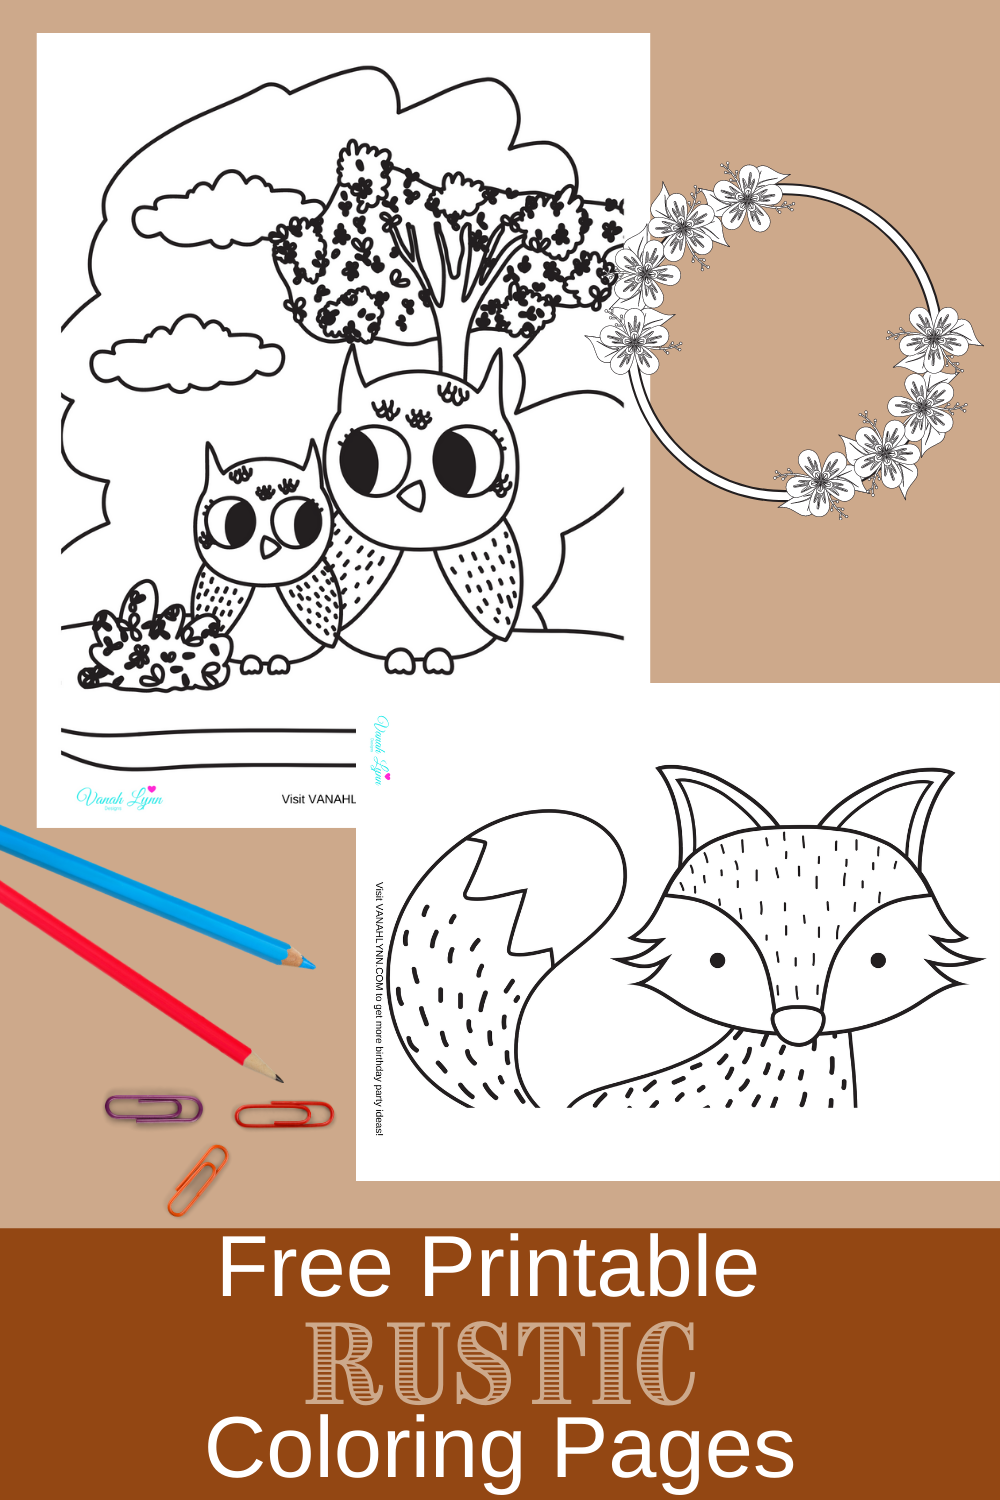 free download: rustic themed activity sheet for a birthday party